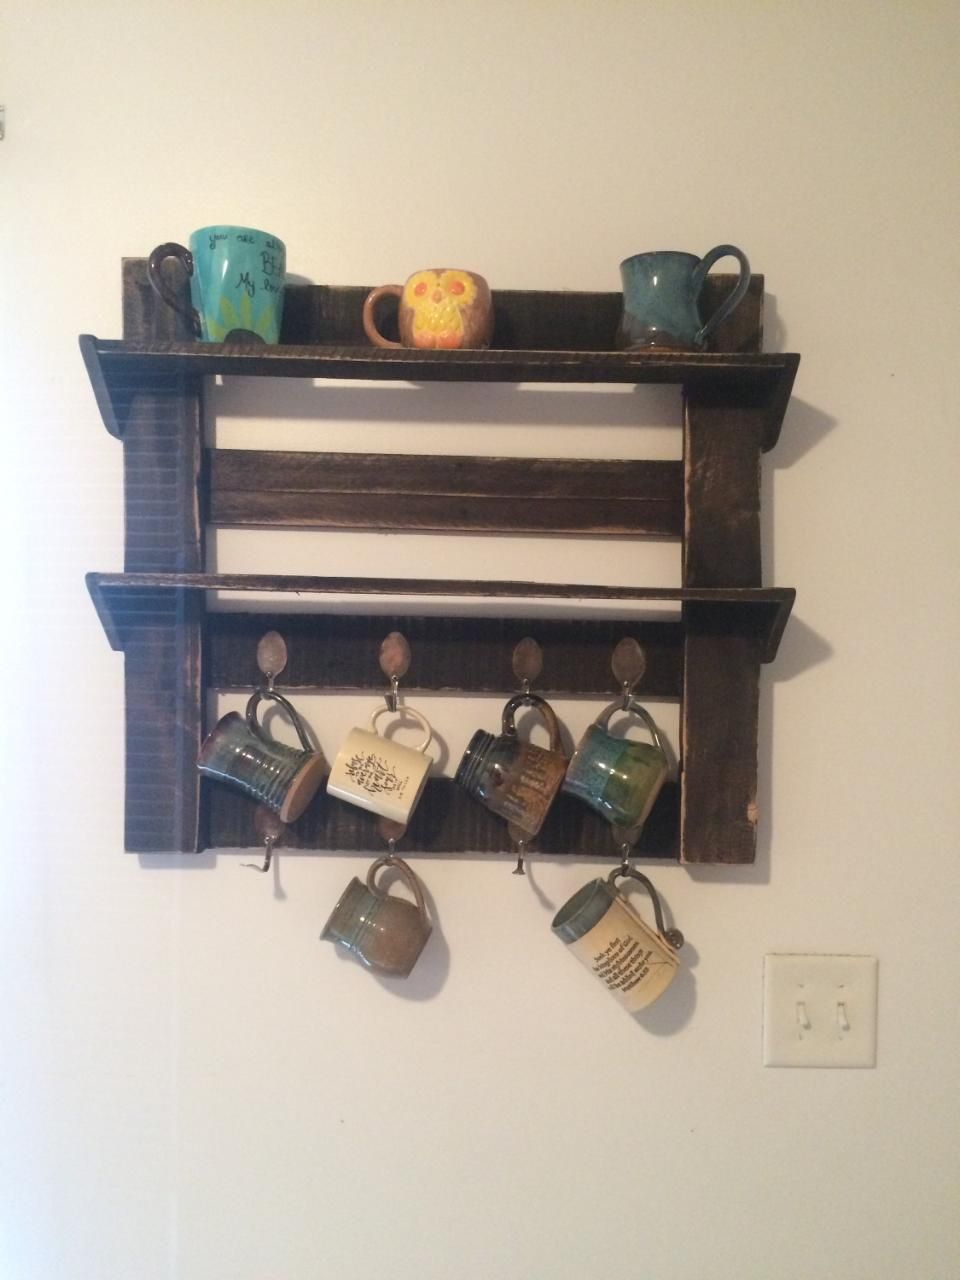 Pallet Coffee Cup Holder Widen And Add A Surround To The Bottom Shelf Put Nice Gl French Press There